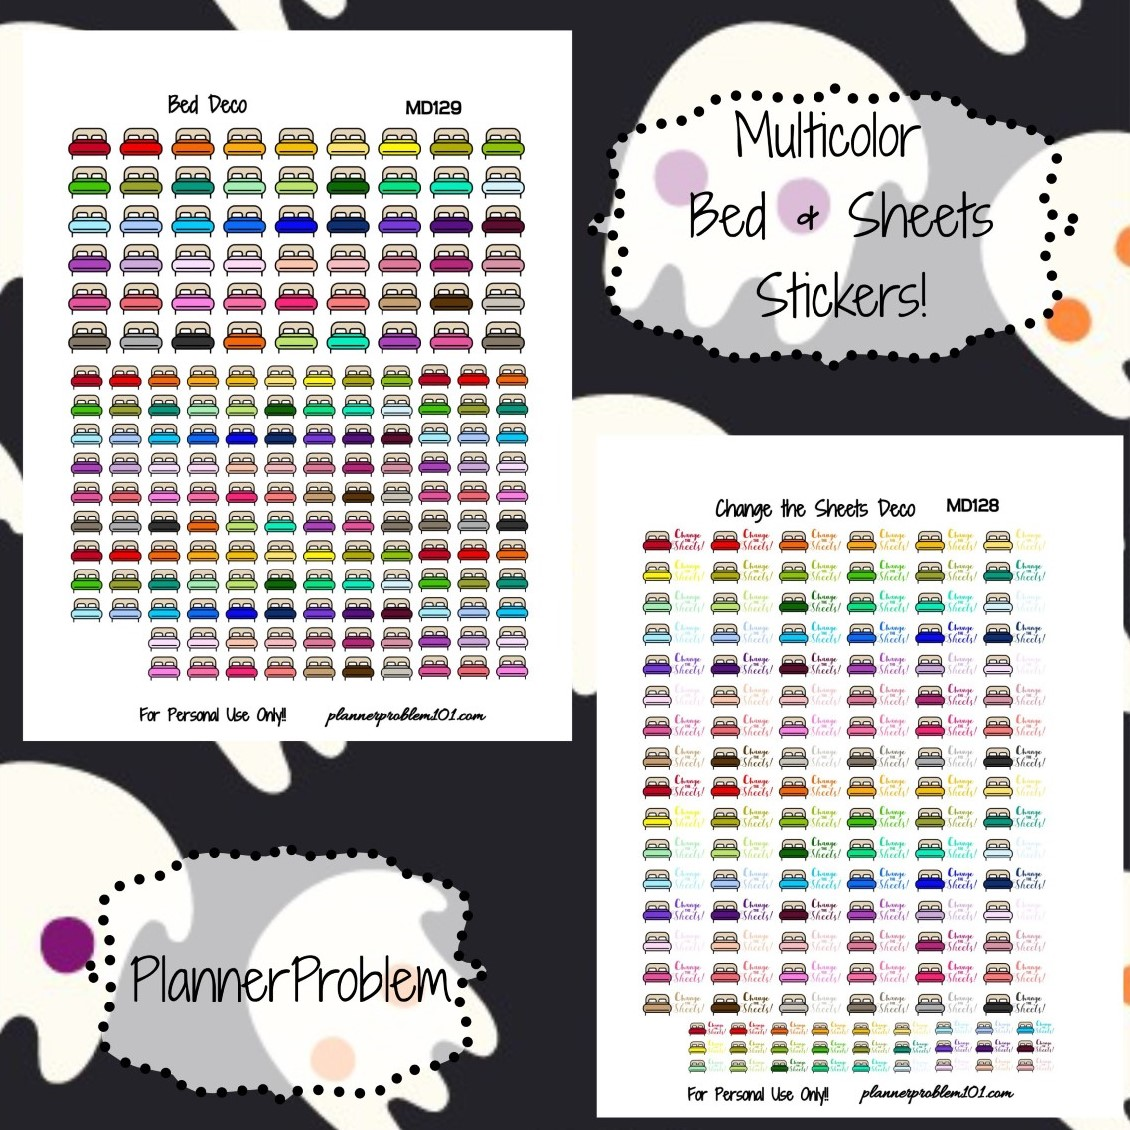 photograph regarding Printable Stickers Sheets titled Multicolor Mattress Sheets Deco! Cost-free Printable Planner